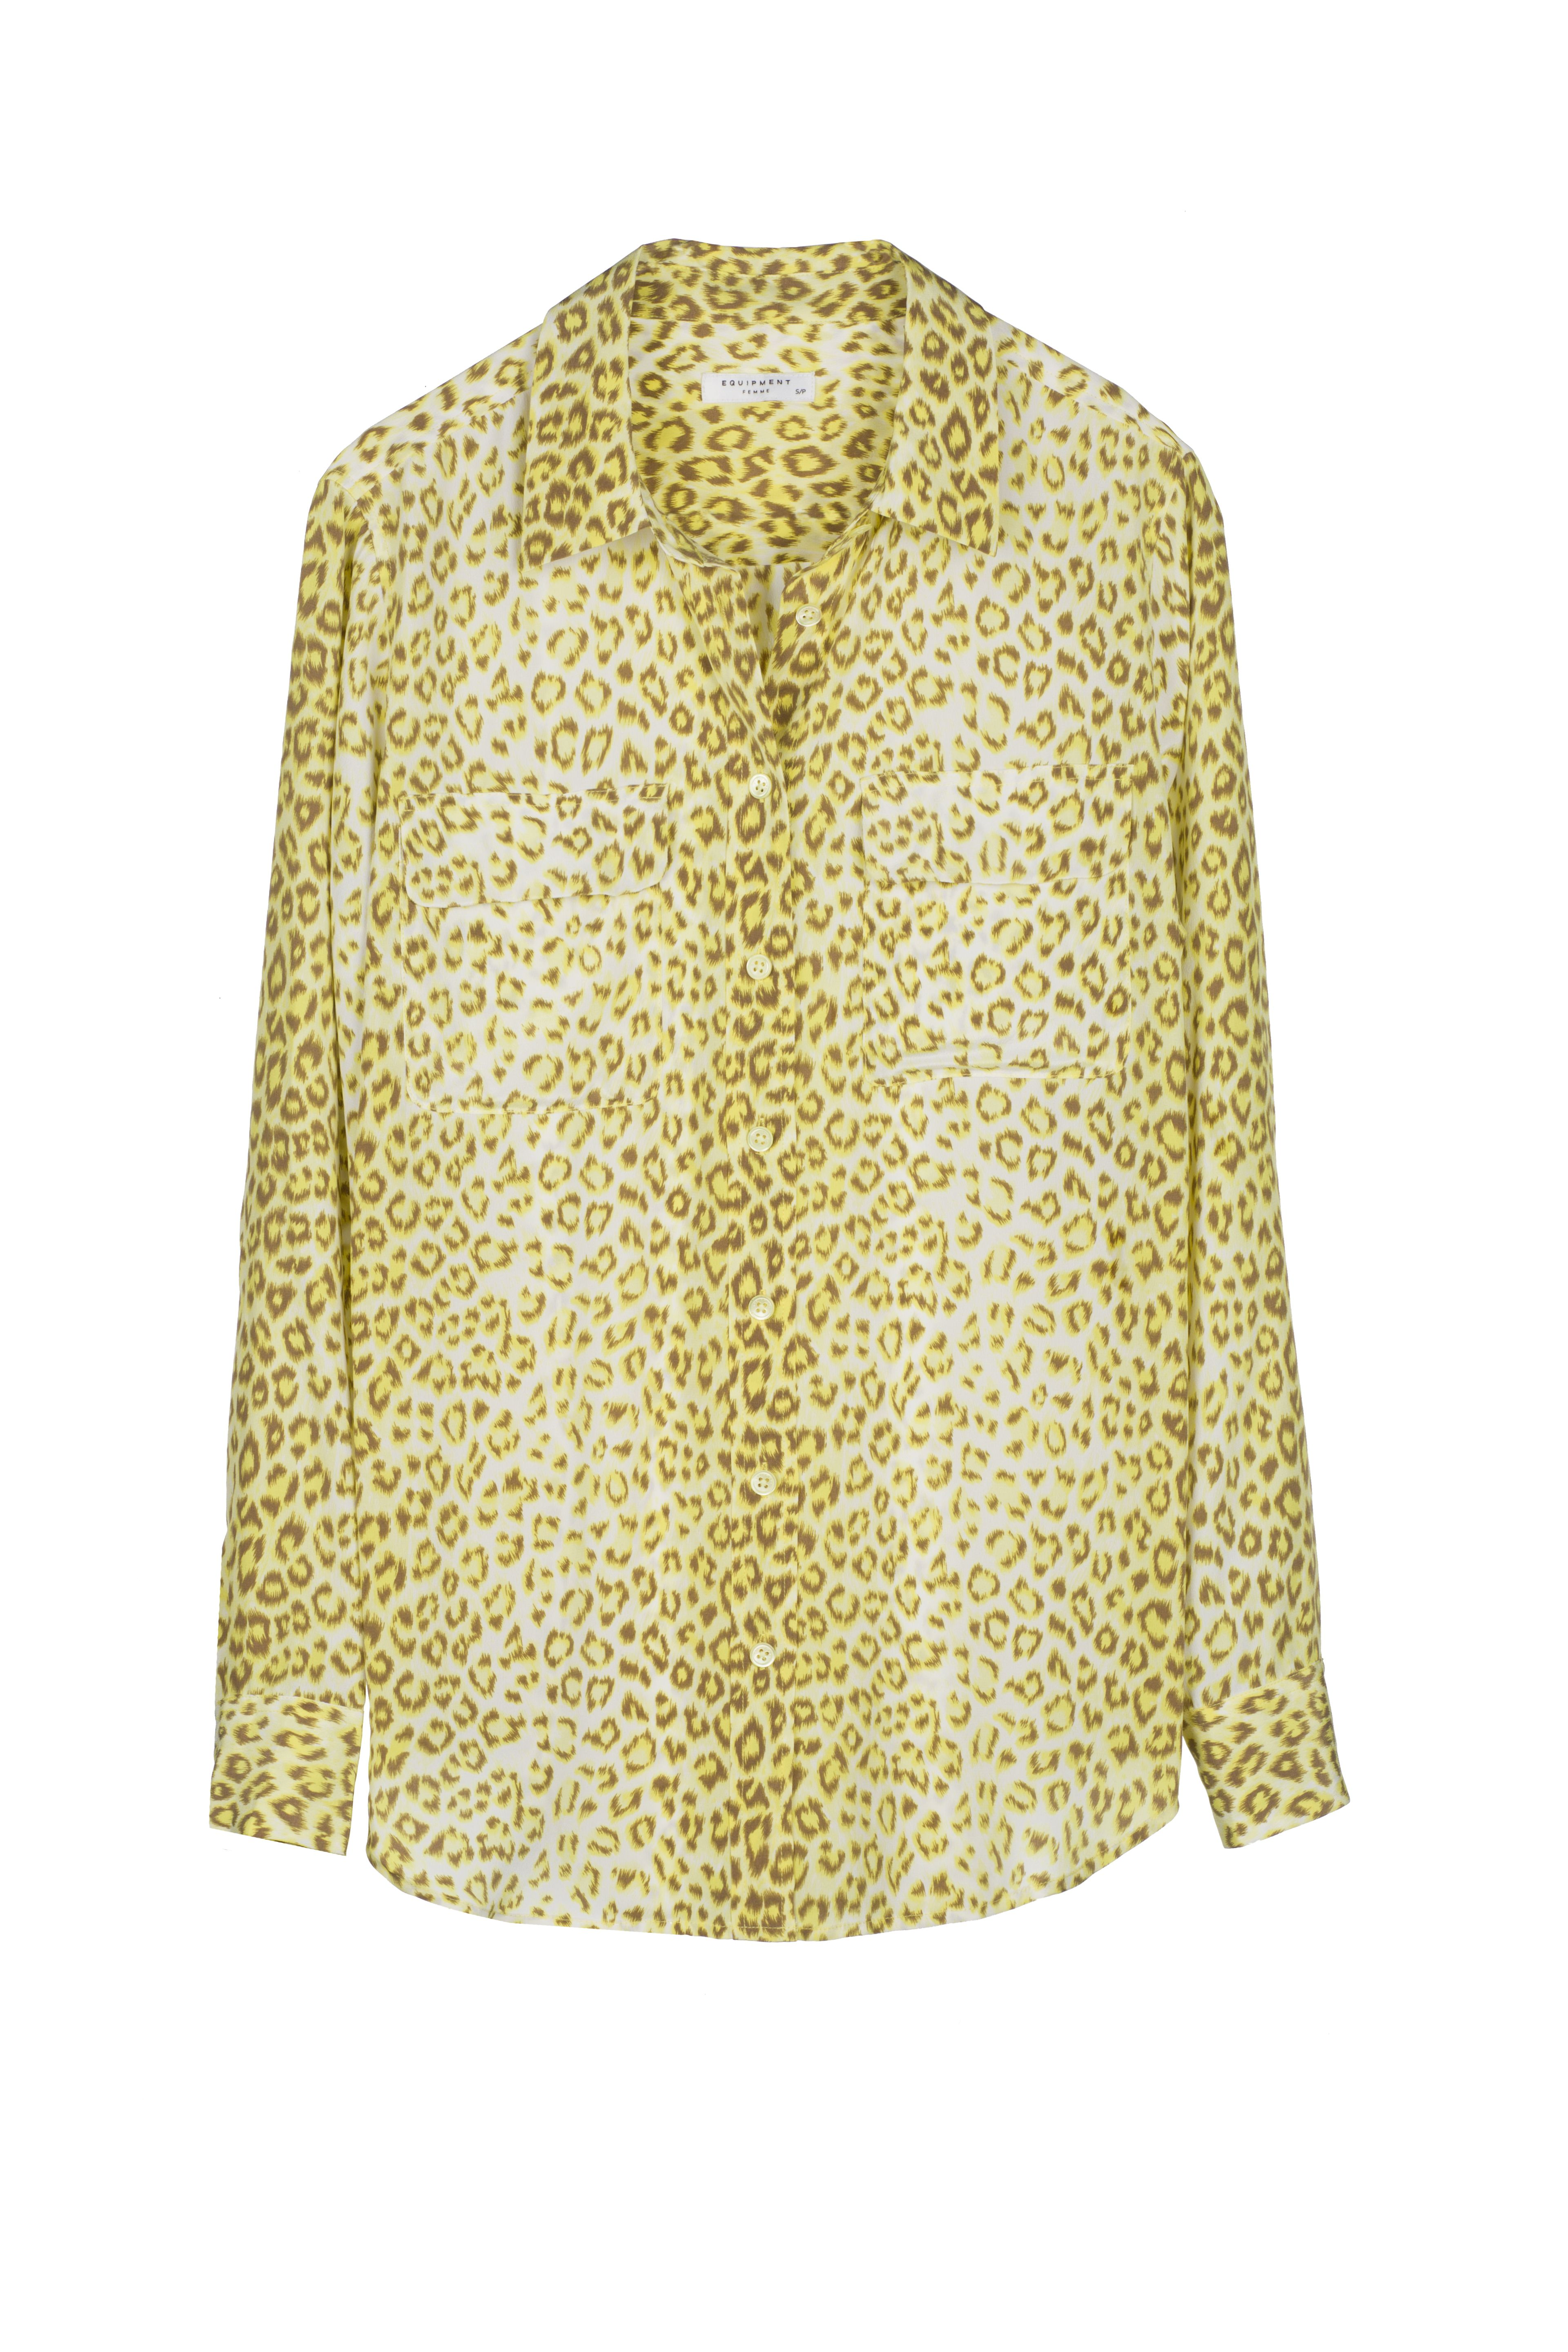 3e04751e79be The Equipment Slim Signature Shirt in a classic leopard print with a  warm-toned twist.